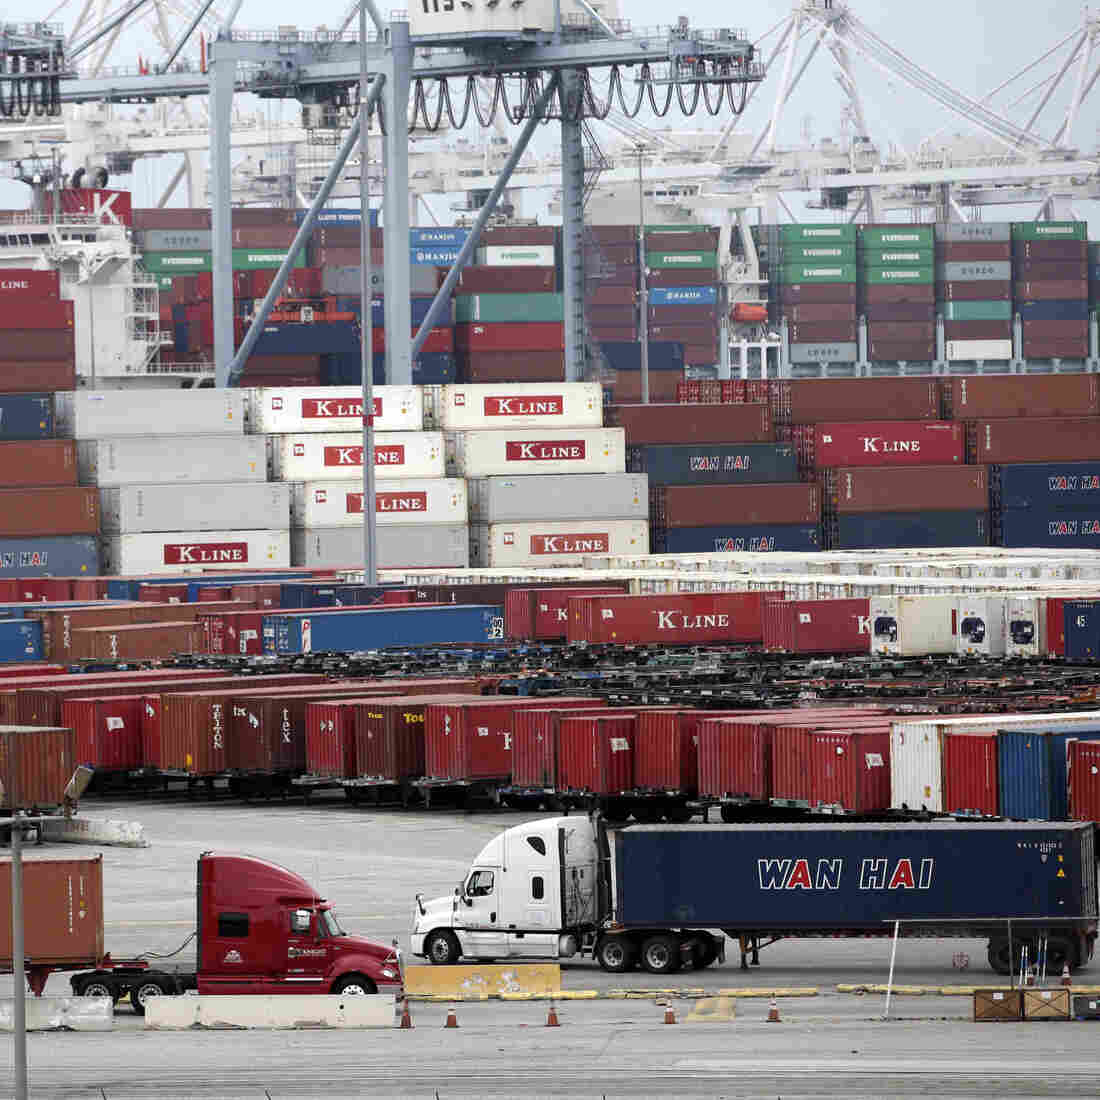 U.S. West Coast Port Dispute Forces Shippers To Find Alternatives